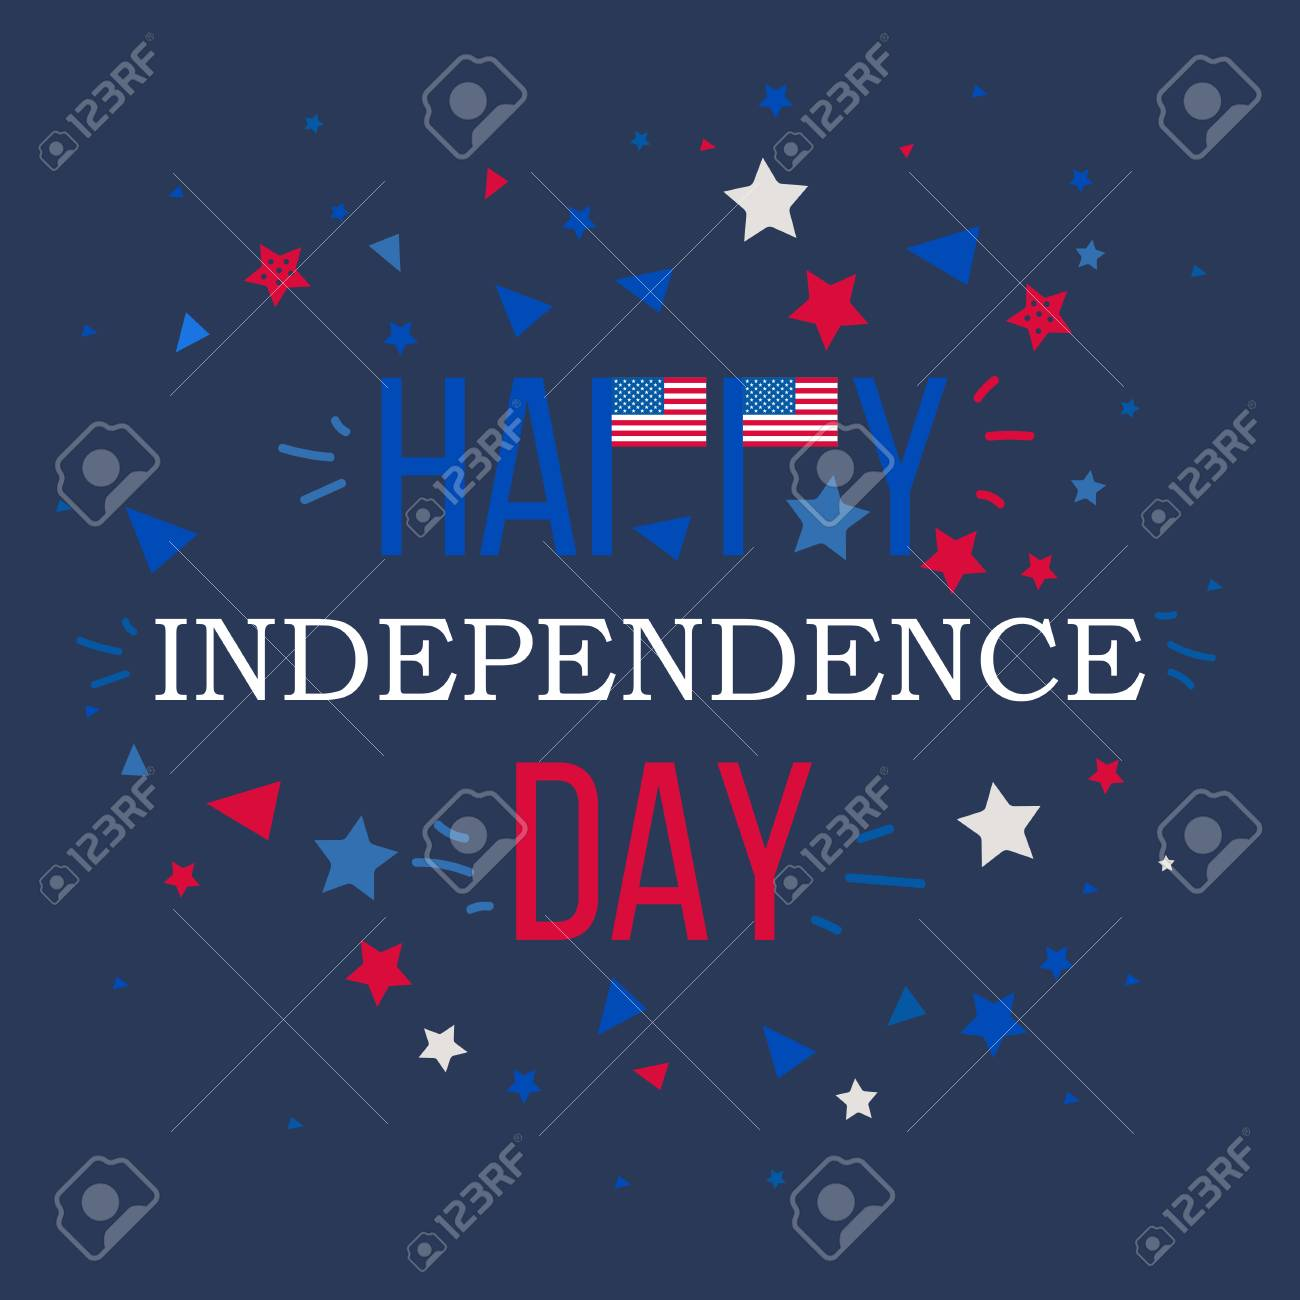 American greetings logo vector choice image greetings card design stylish american independence day greeting stock vector stock 4th of july usa independence day celebration banner national m4hsunfo